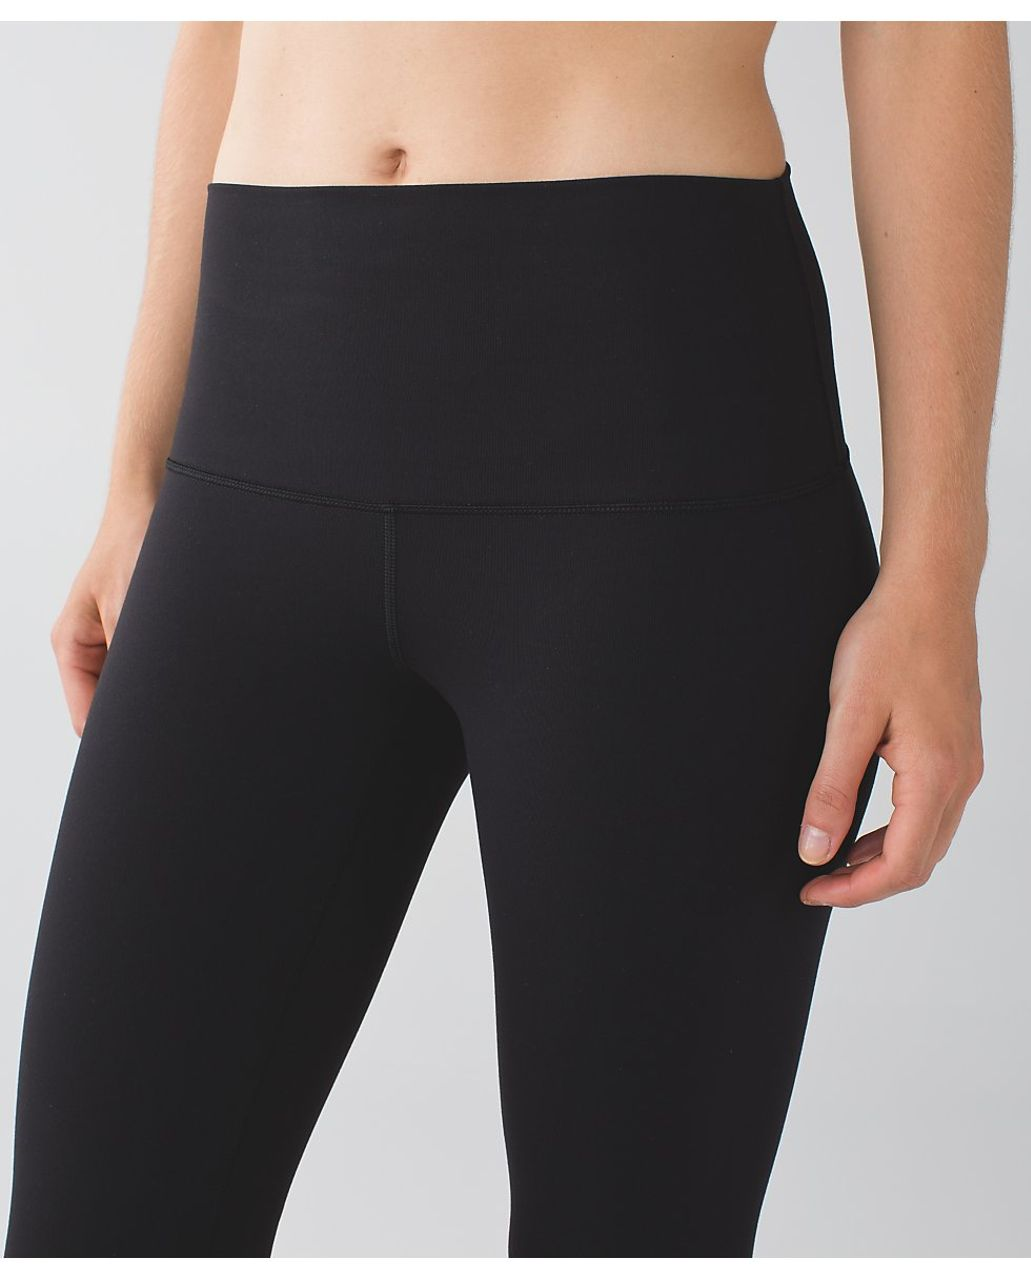 Lululemon Wunder Under Crop II (Roll Down) *Special Edition - Black